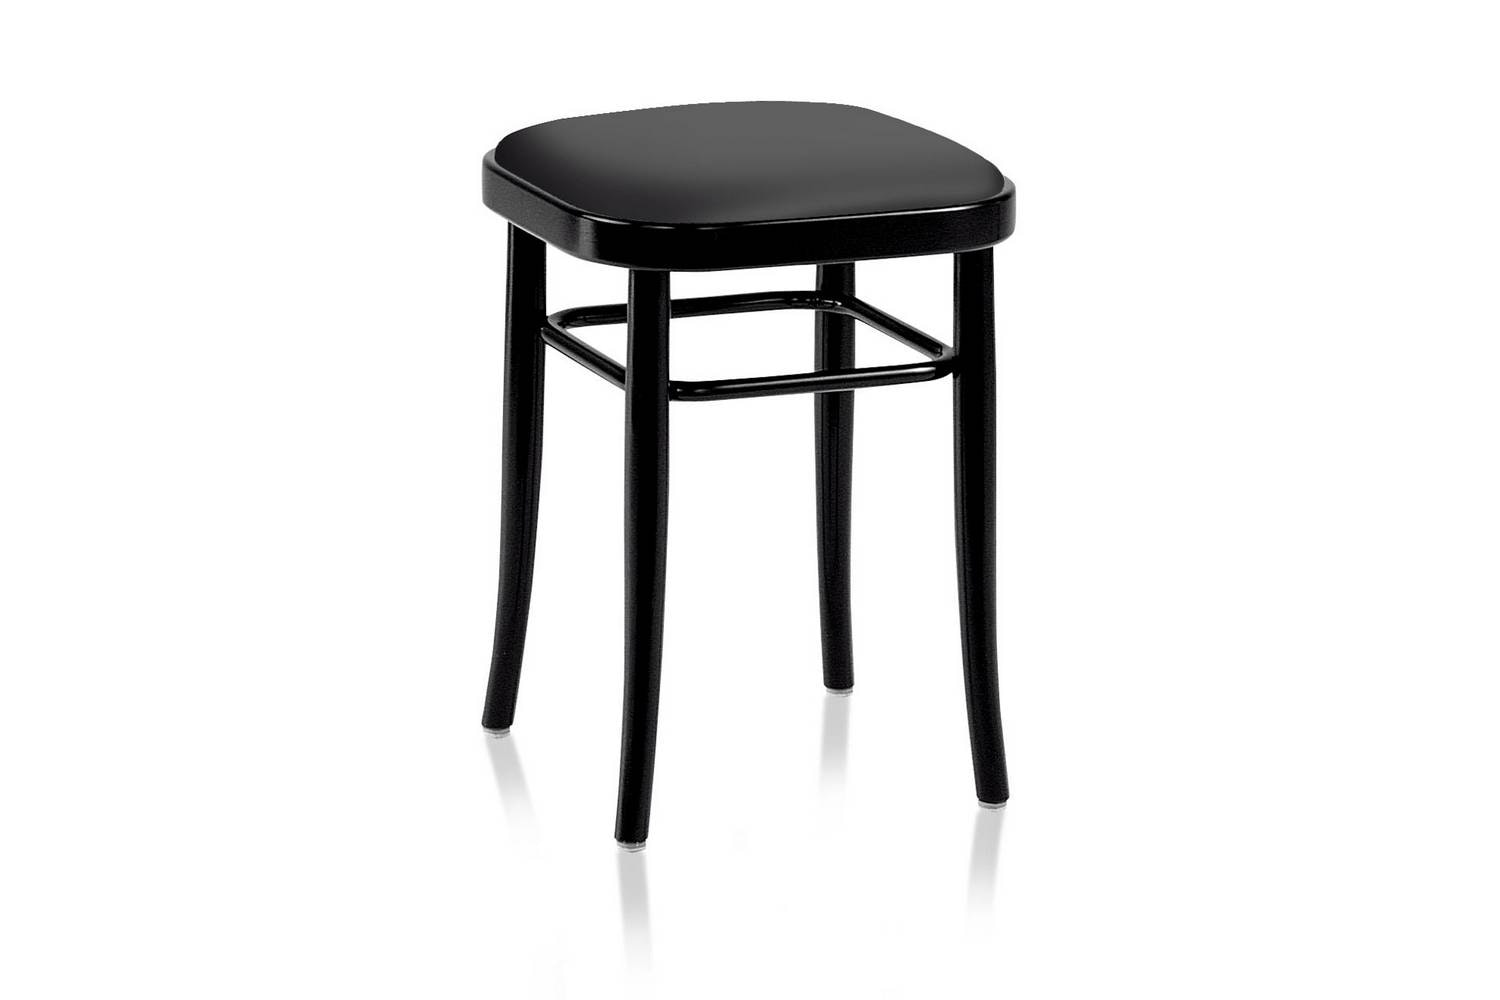 Vienna 144 Hocker Stool by Gebruder Thonet Vienna for Wiener GTV Design